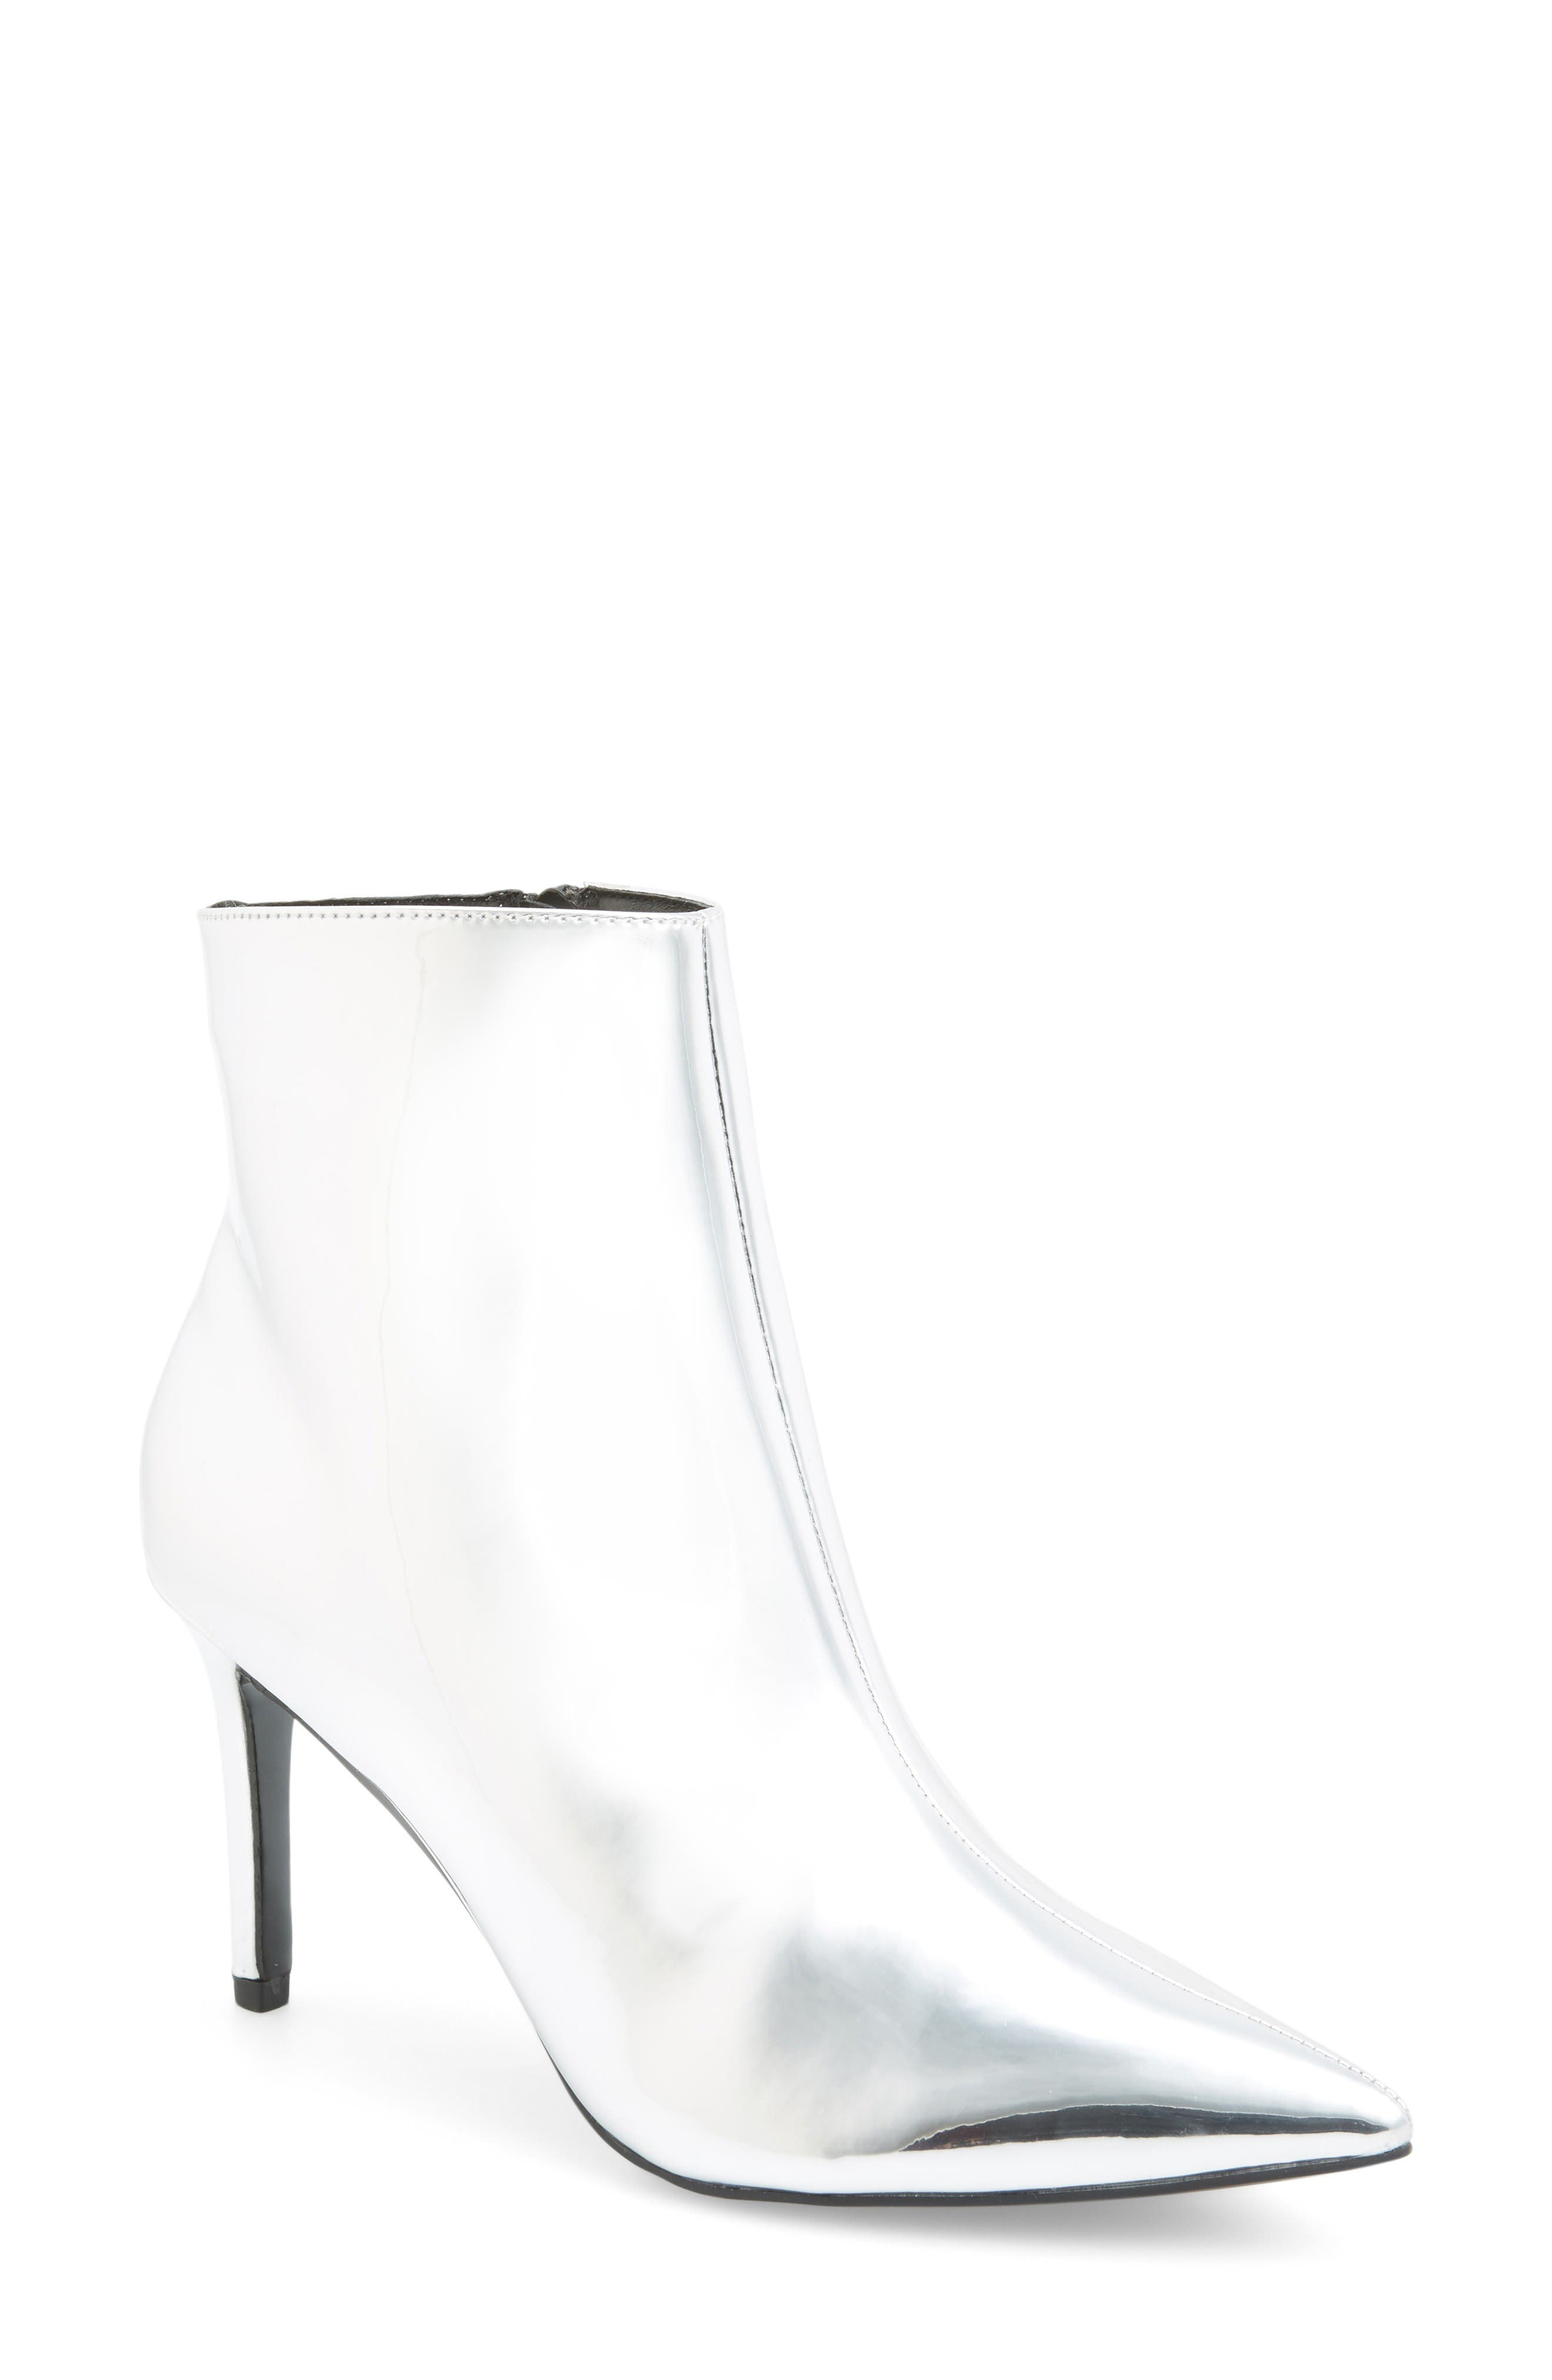 Main Image - Topshop Mimosa Pointy Toe Bootie (Women)